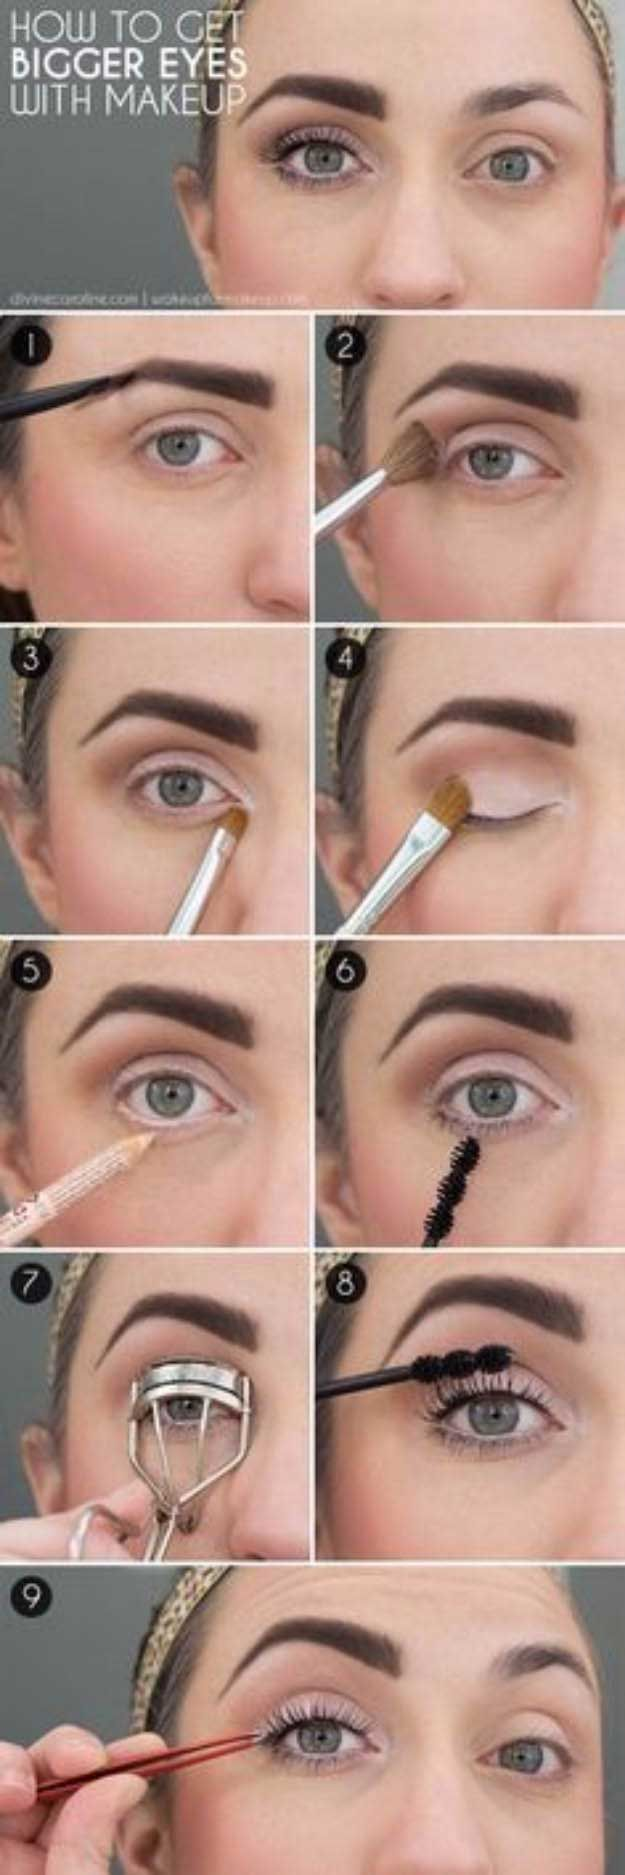 Makeup Tutorials For Small Eyes - How to Make Eyes Look Bigger - Easy Step By Step Guides On How to Apply Eyeliner and Get Perfect Lashes and Brows and How To Make Your Eyes Look Bigger - Beauty Tips for All Different Faces - Eyebrows and Cut Crease Youtube Videos for Girls - thegoddess.com/makeup-tutorials-small-eyes